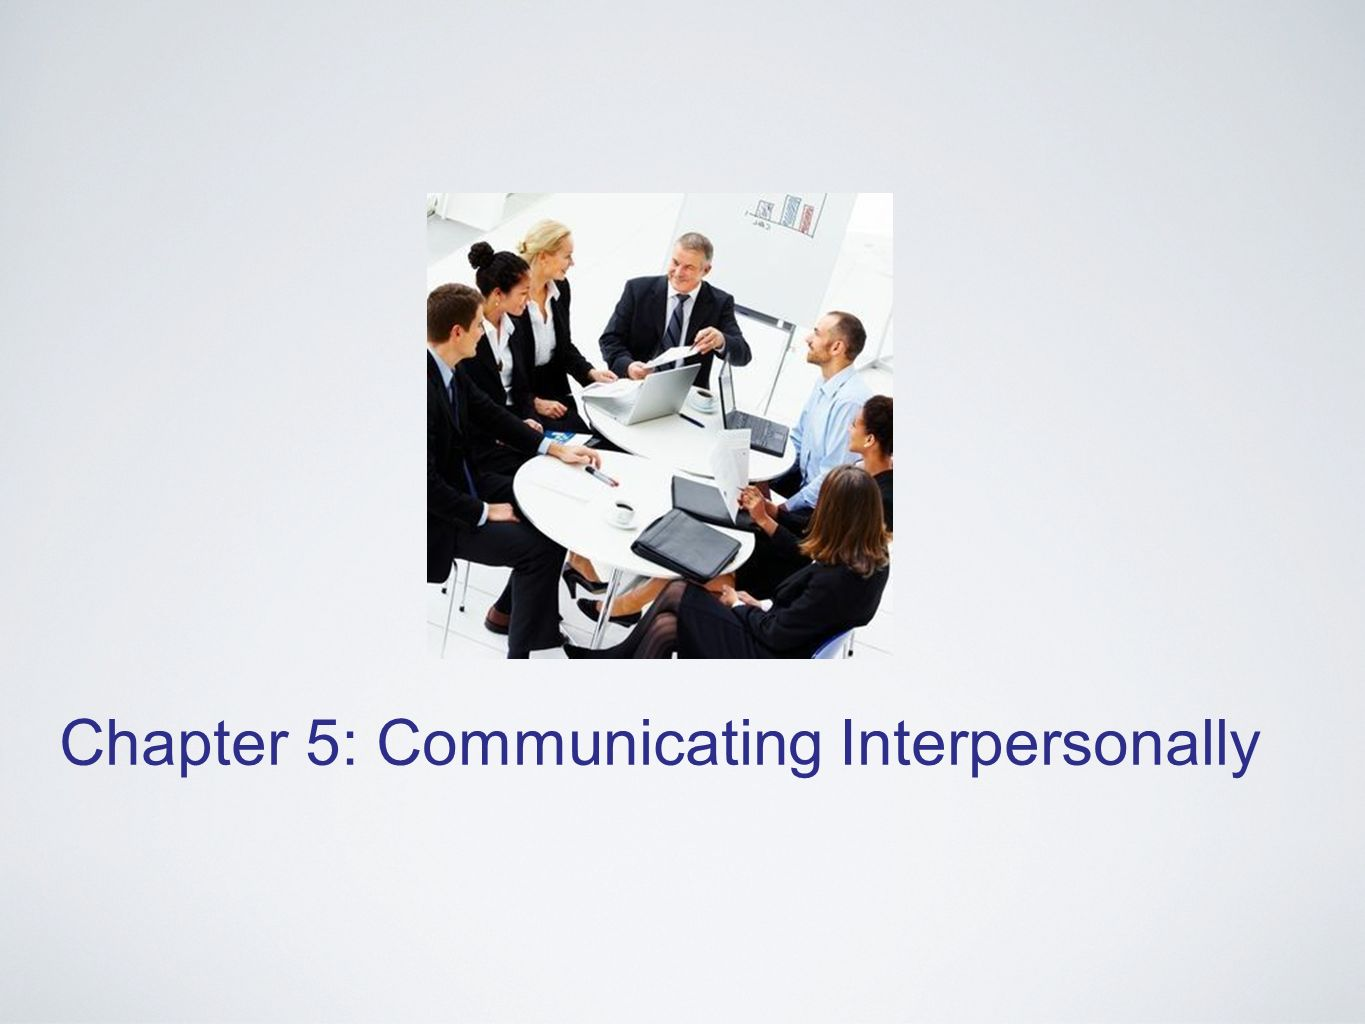 Chapter 5: Communicating Interpersonally